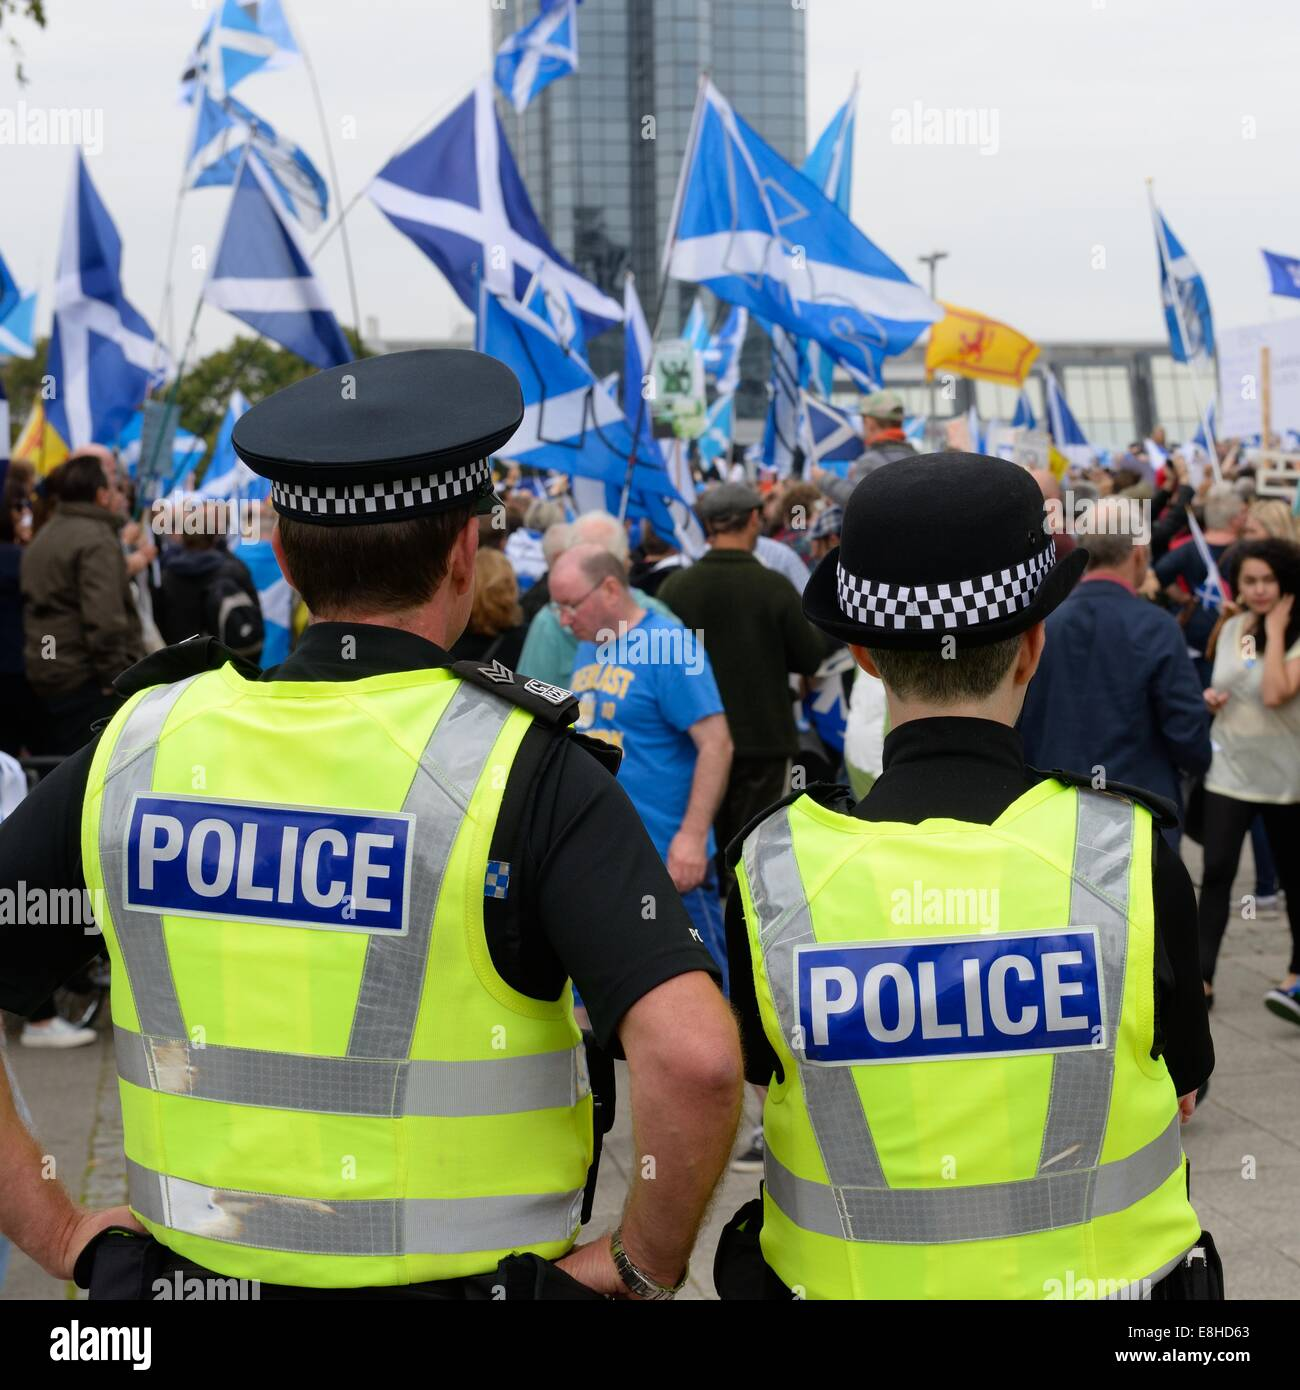 Male and female police officers observe a political rally in Glasgow, Scotland, UK, Europe - Stock Image